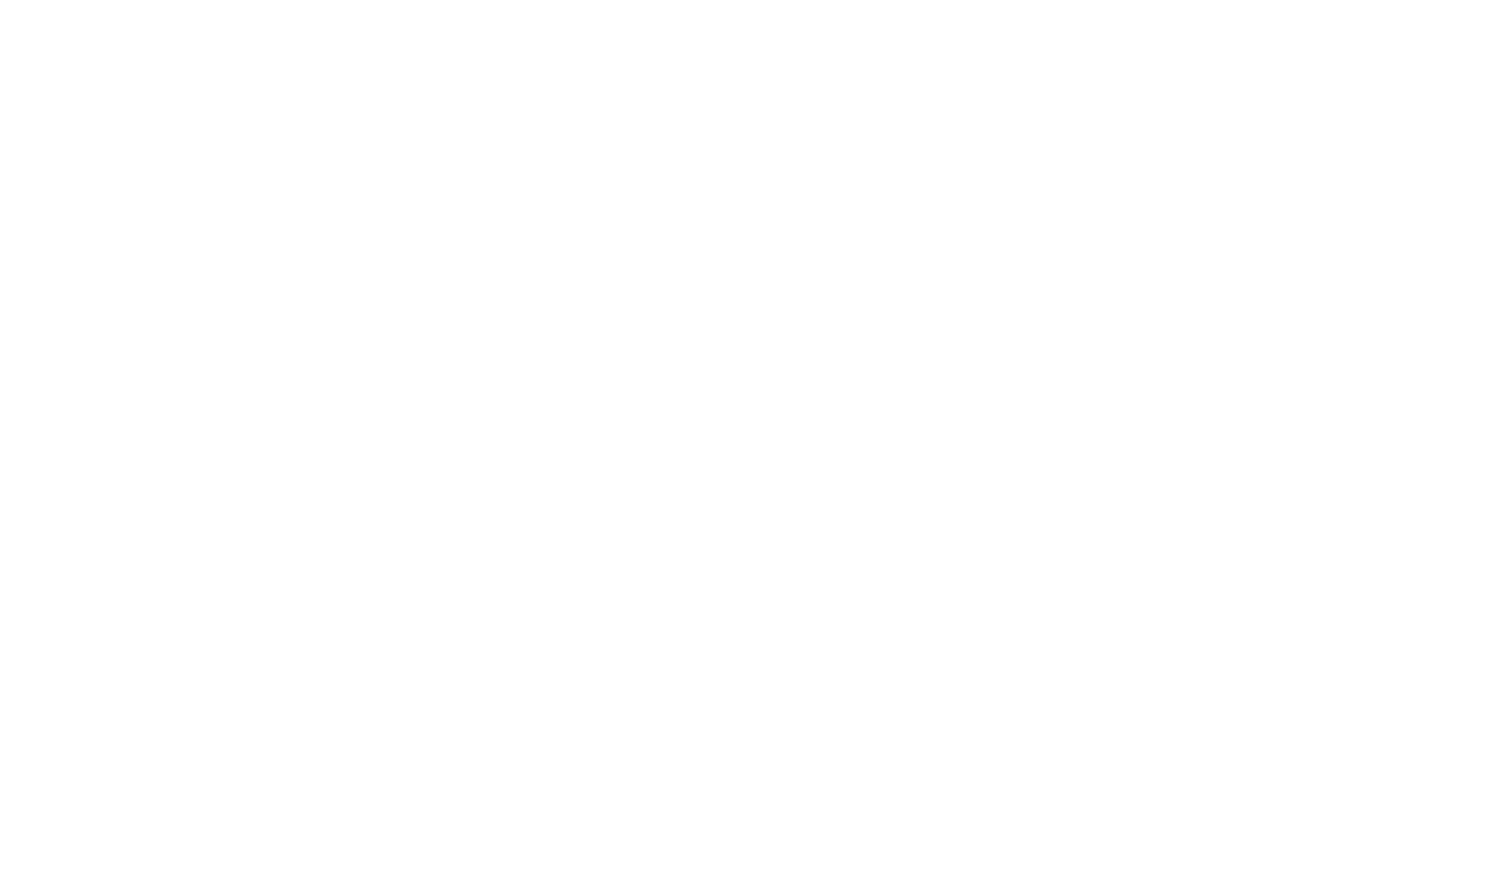 Brisbane Wedding Planner and Stylist - Eventive Co